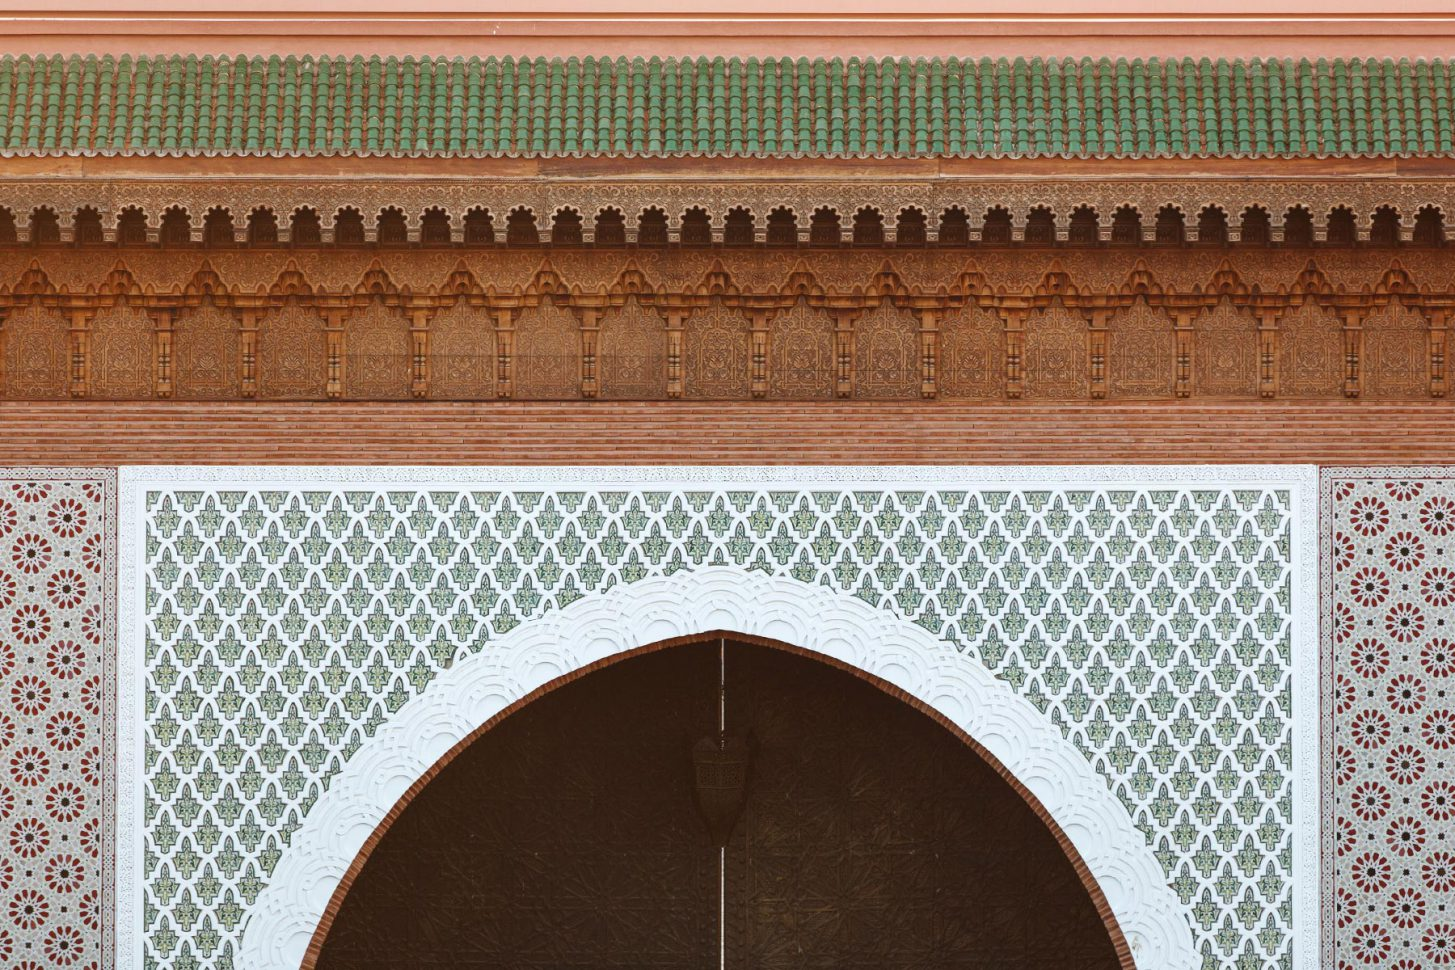 Quietude in Marrakech